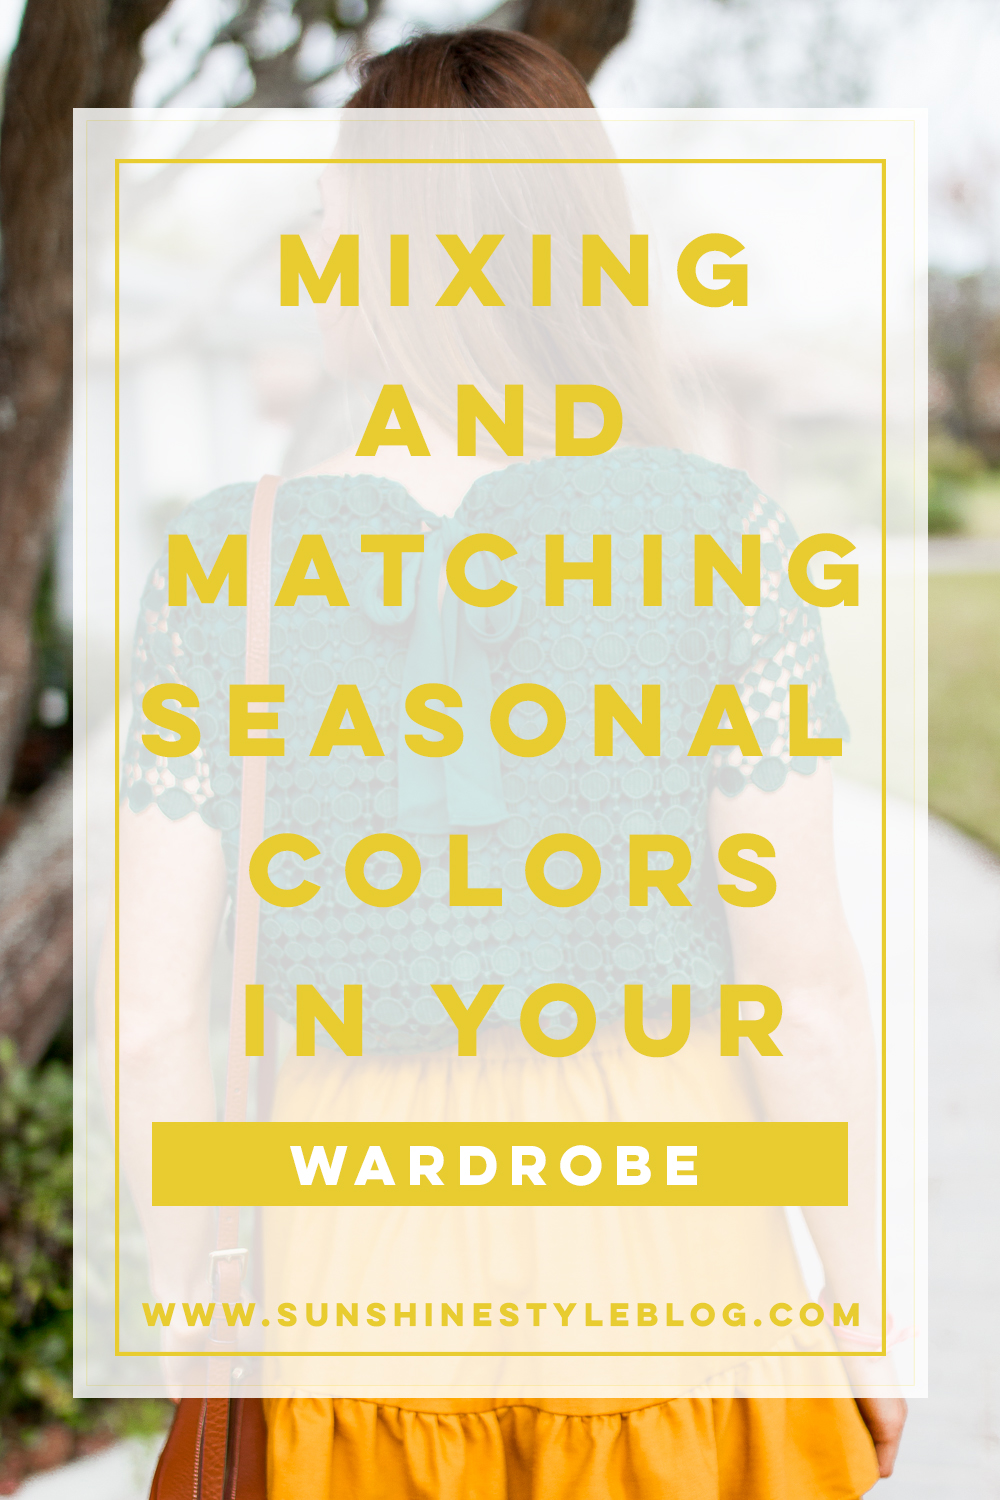 Mixing and Matching Seasonal Colors into Your Wardrobe | How to Dress for Fall | How to Incorporate Fall Colors in Your Wardrobe | Fall Outfit Ideas 2018 - Sunshine Style